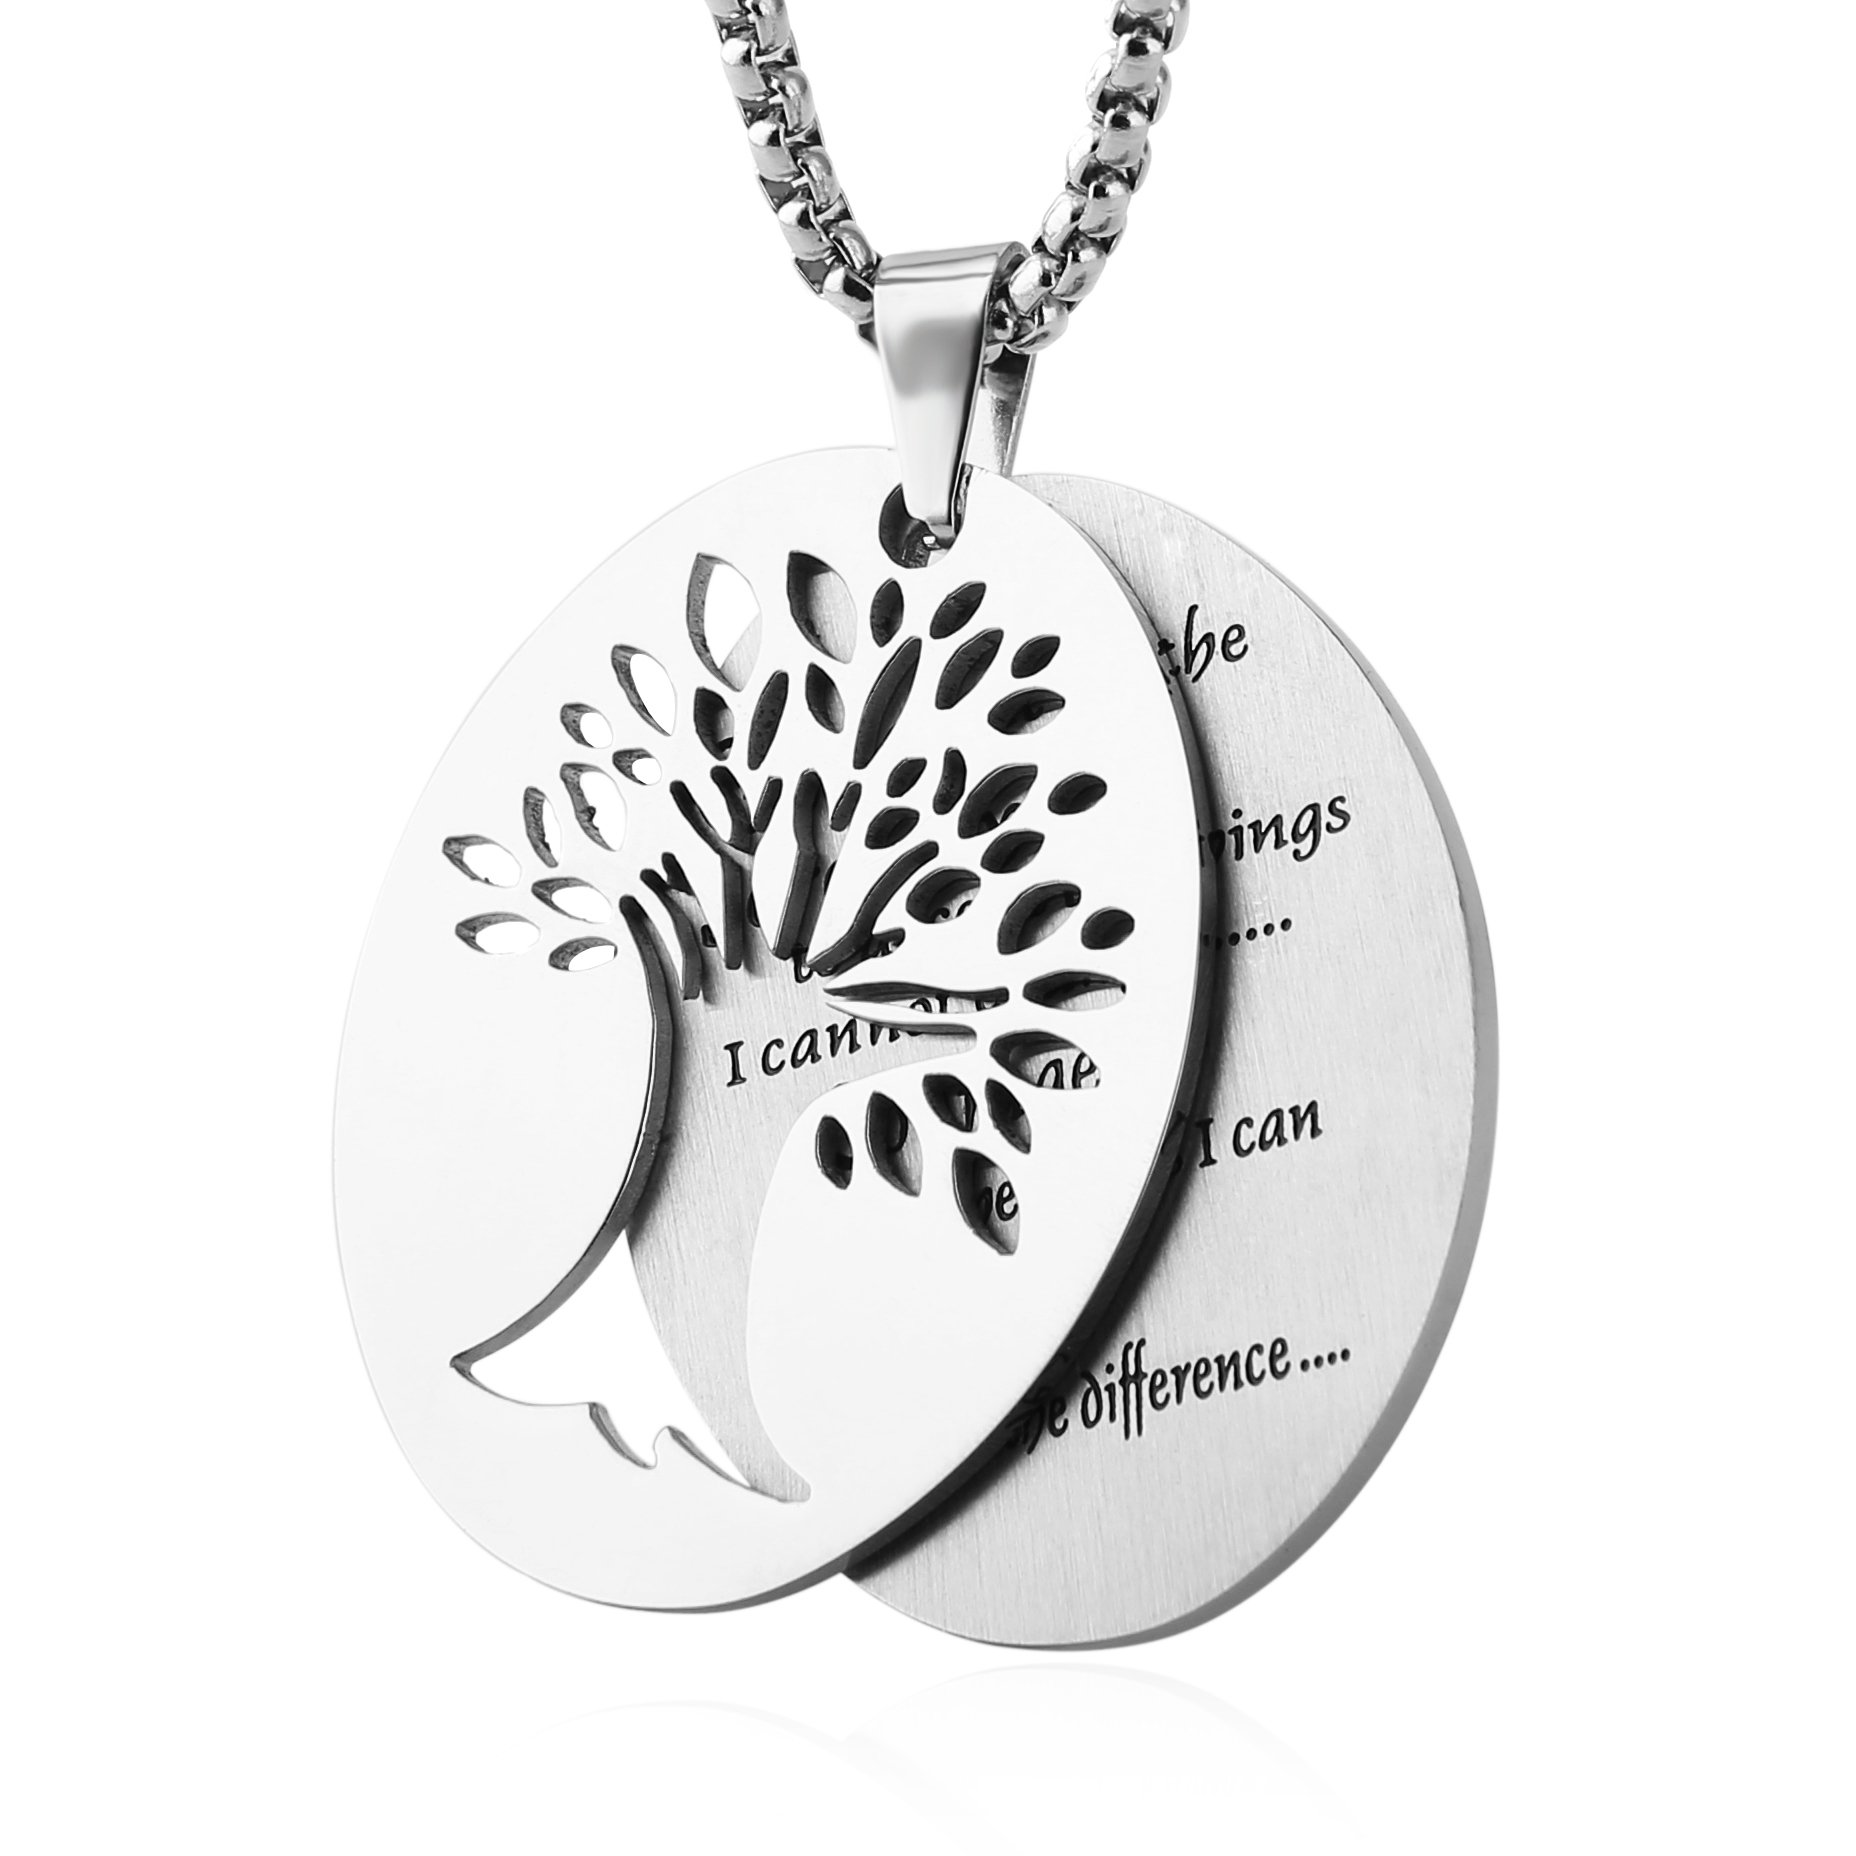 HZMAN Two Piece Serenity Prayer Stainless Steel Pendant Necklace with Tree of Life Cut Out (Silver) by HZMAN